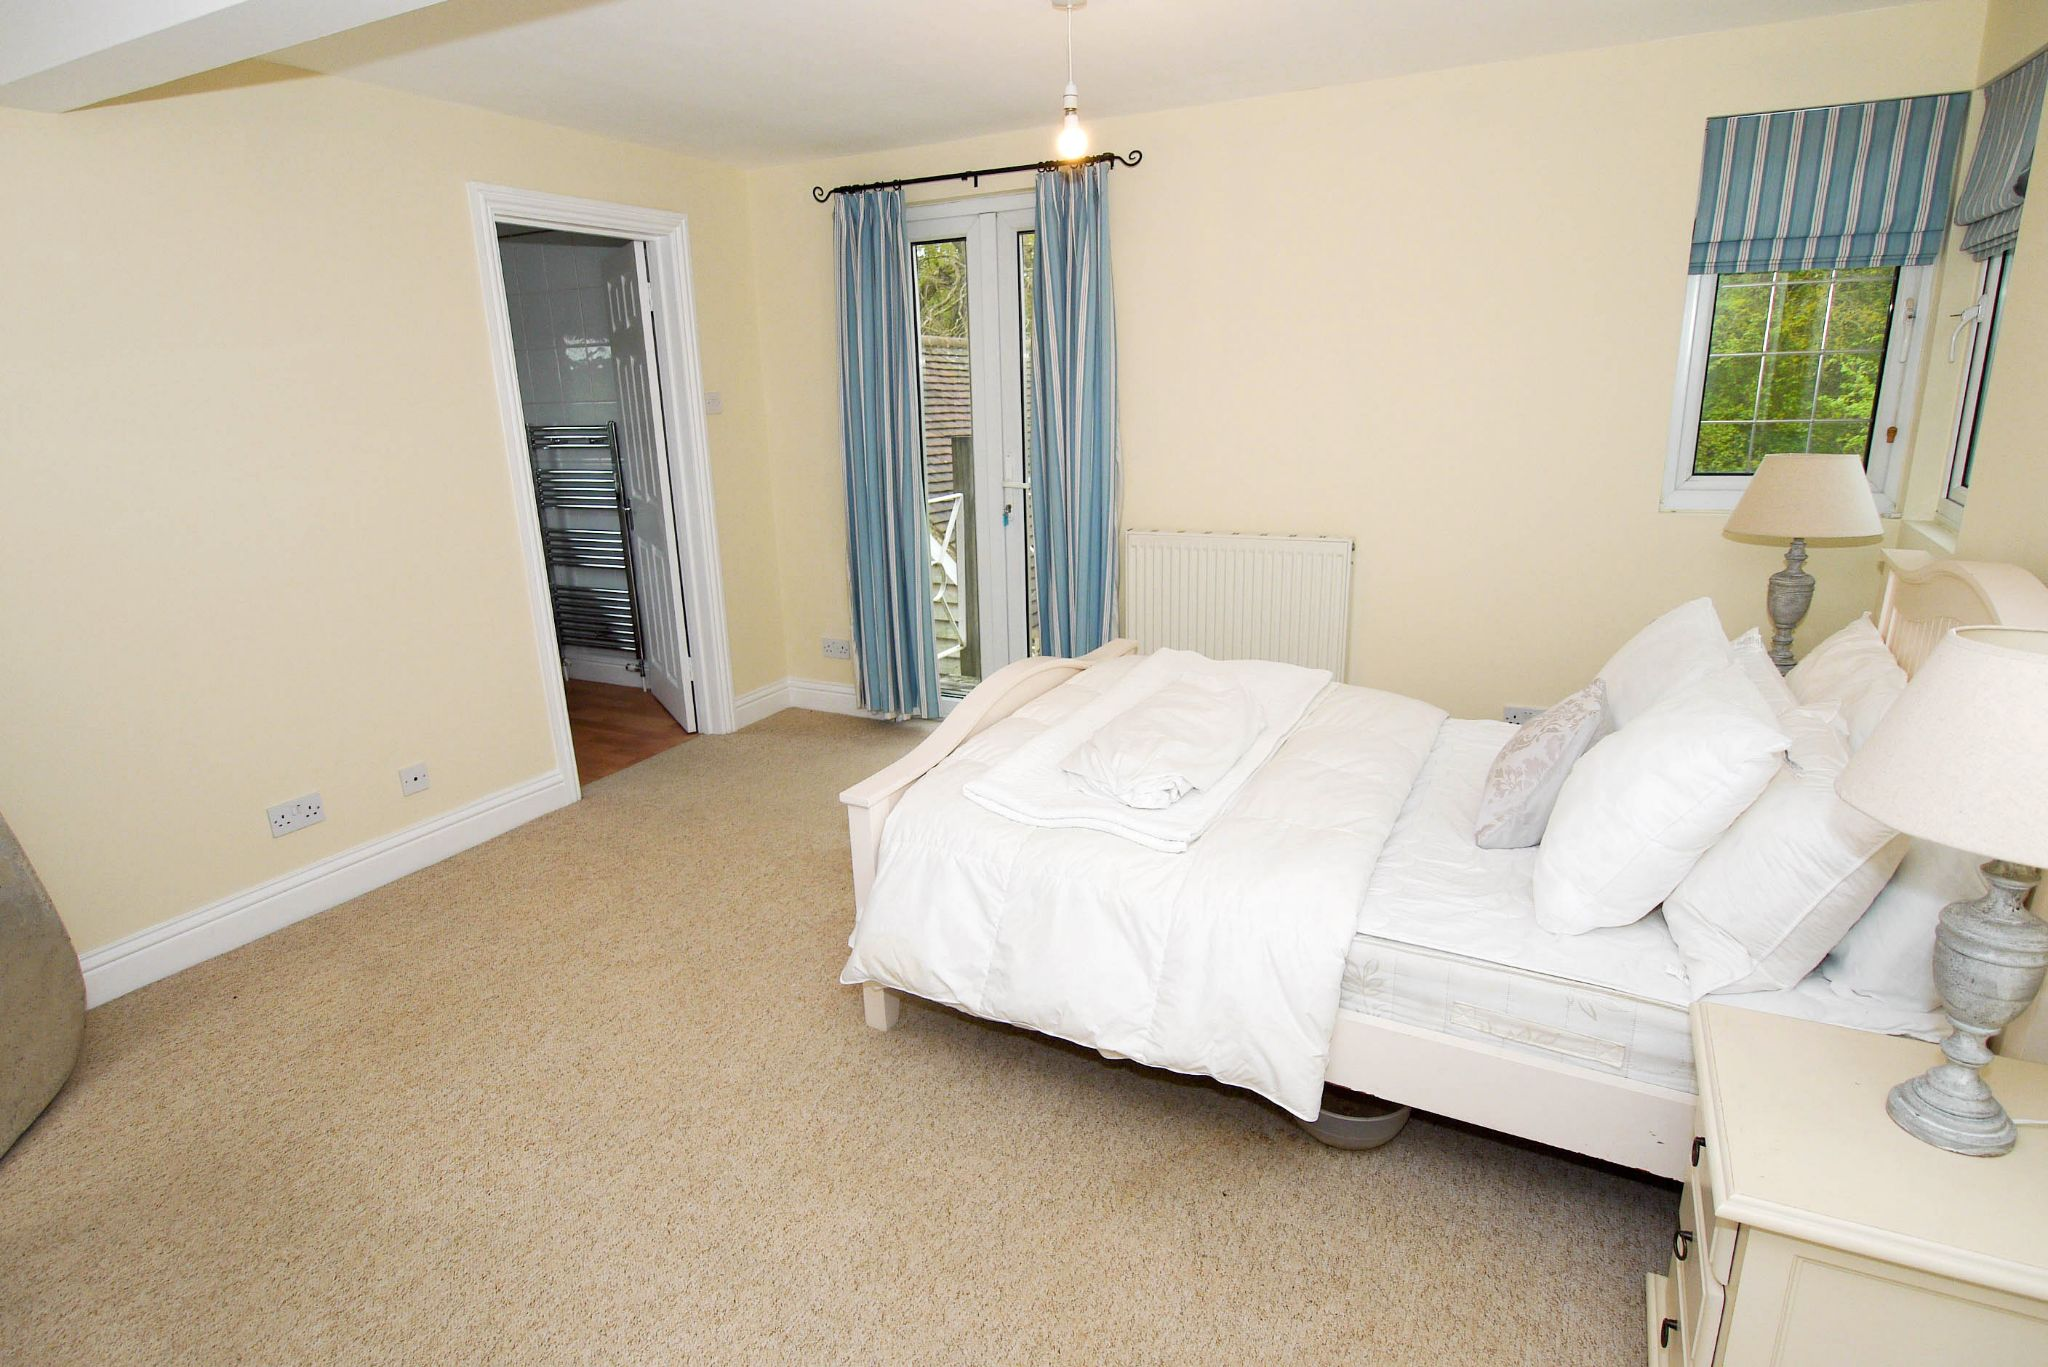 6 bedroom detached house For Sale in Sevenoaks - Photograph 11